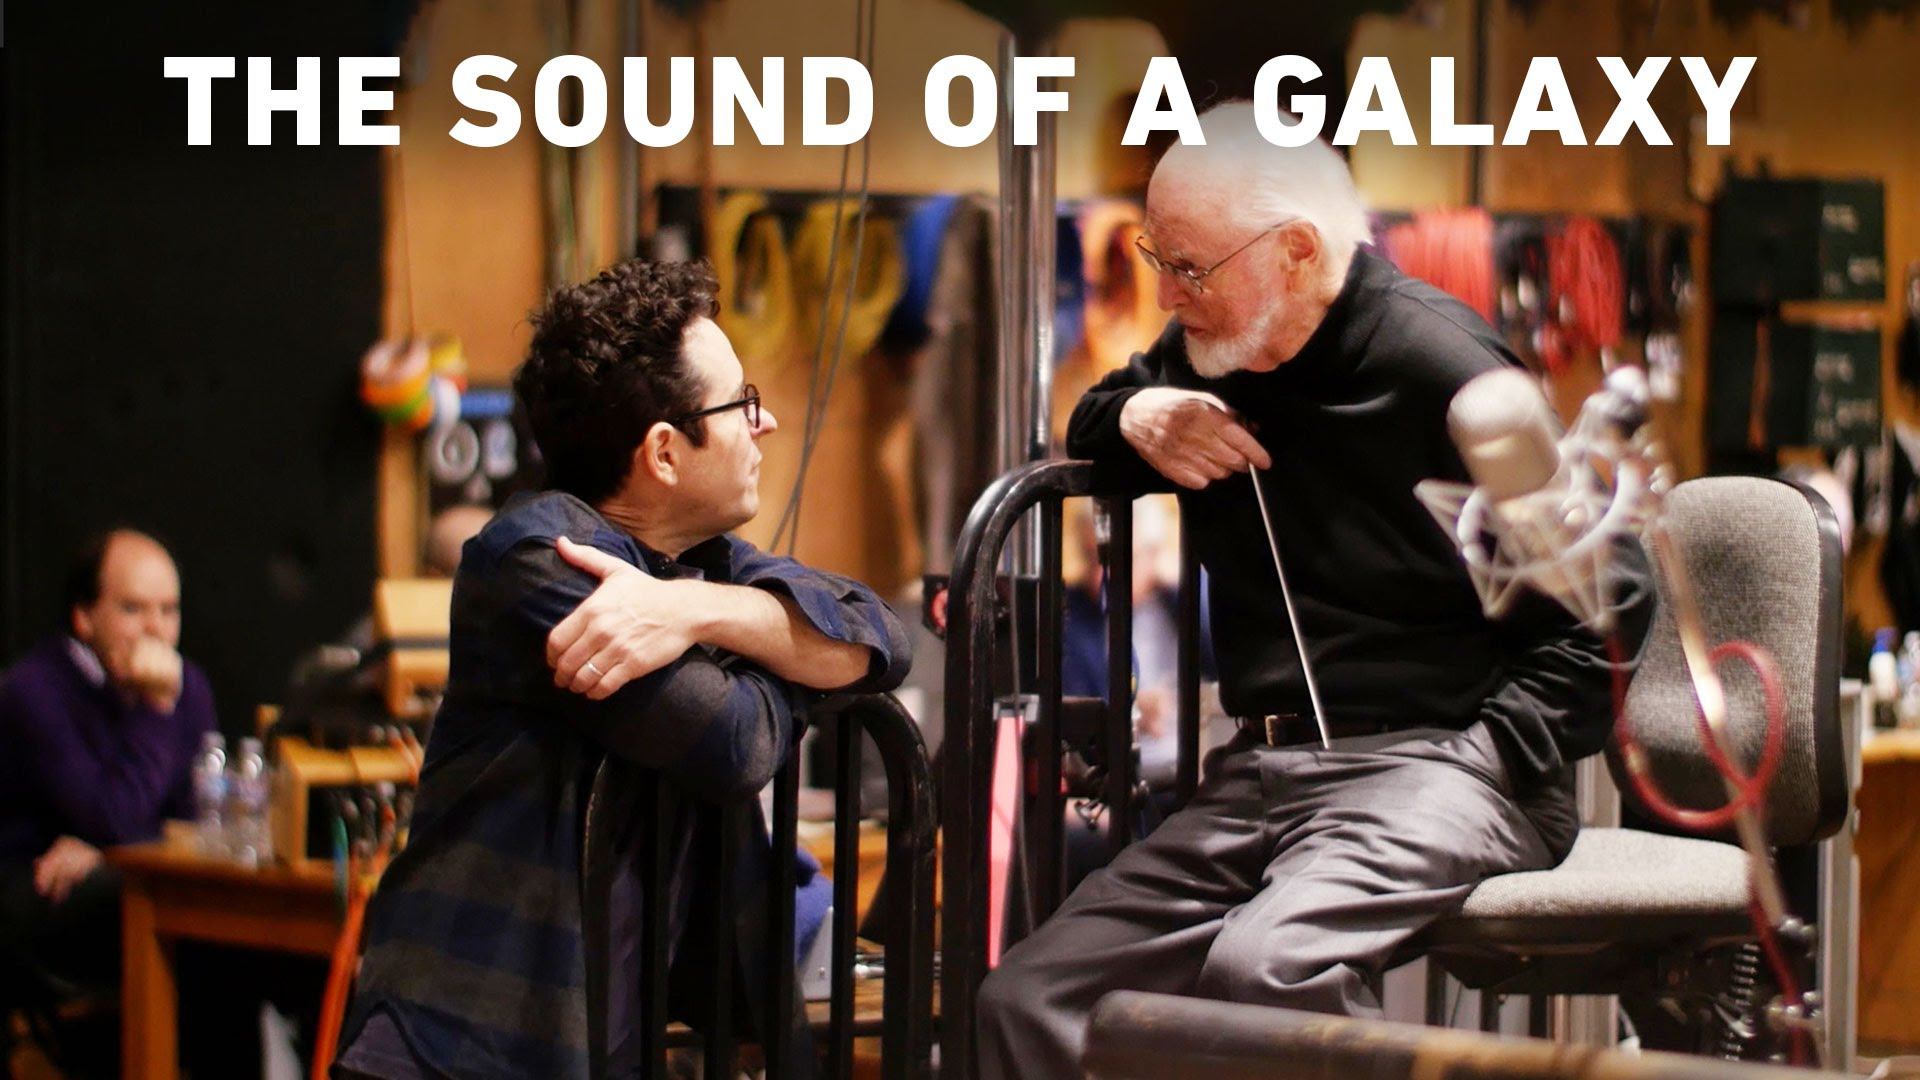 The Sound of a Galaxy: Inside the Star Wars: The Force Awakens Soundtrack